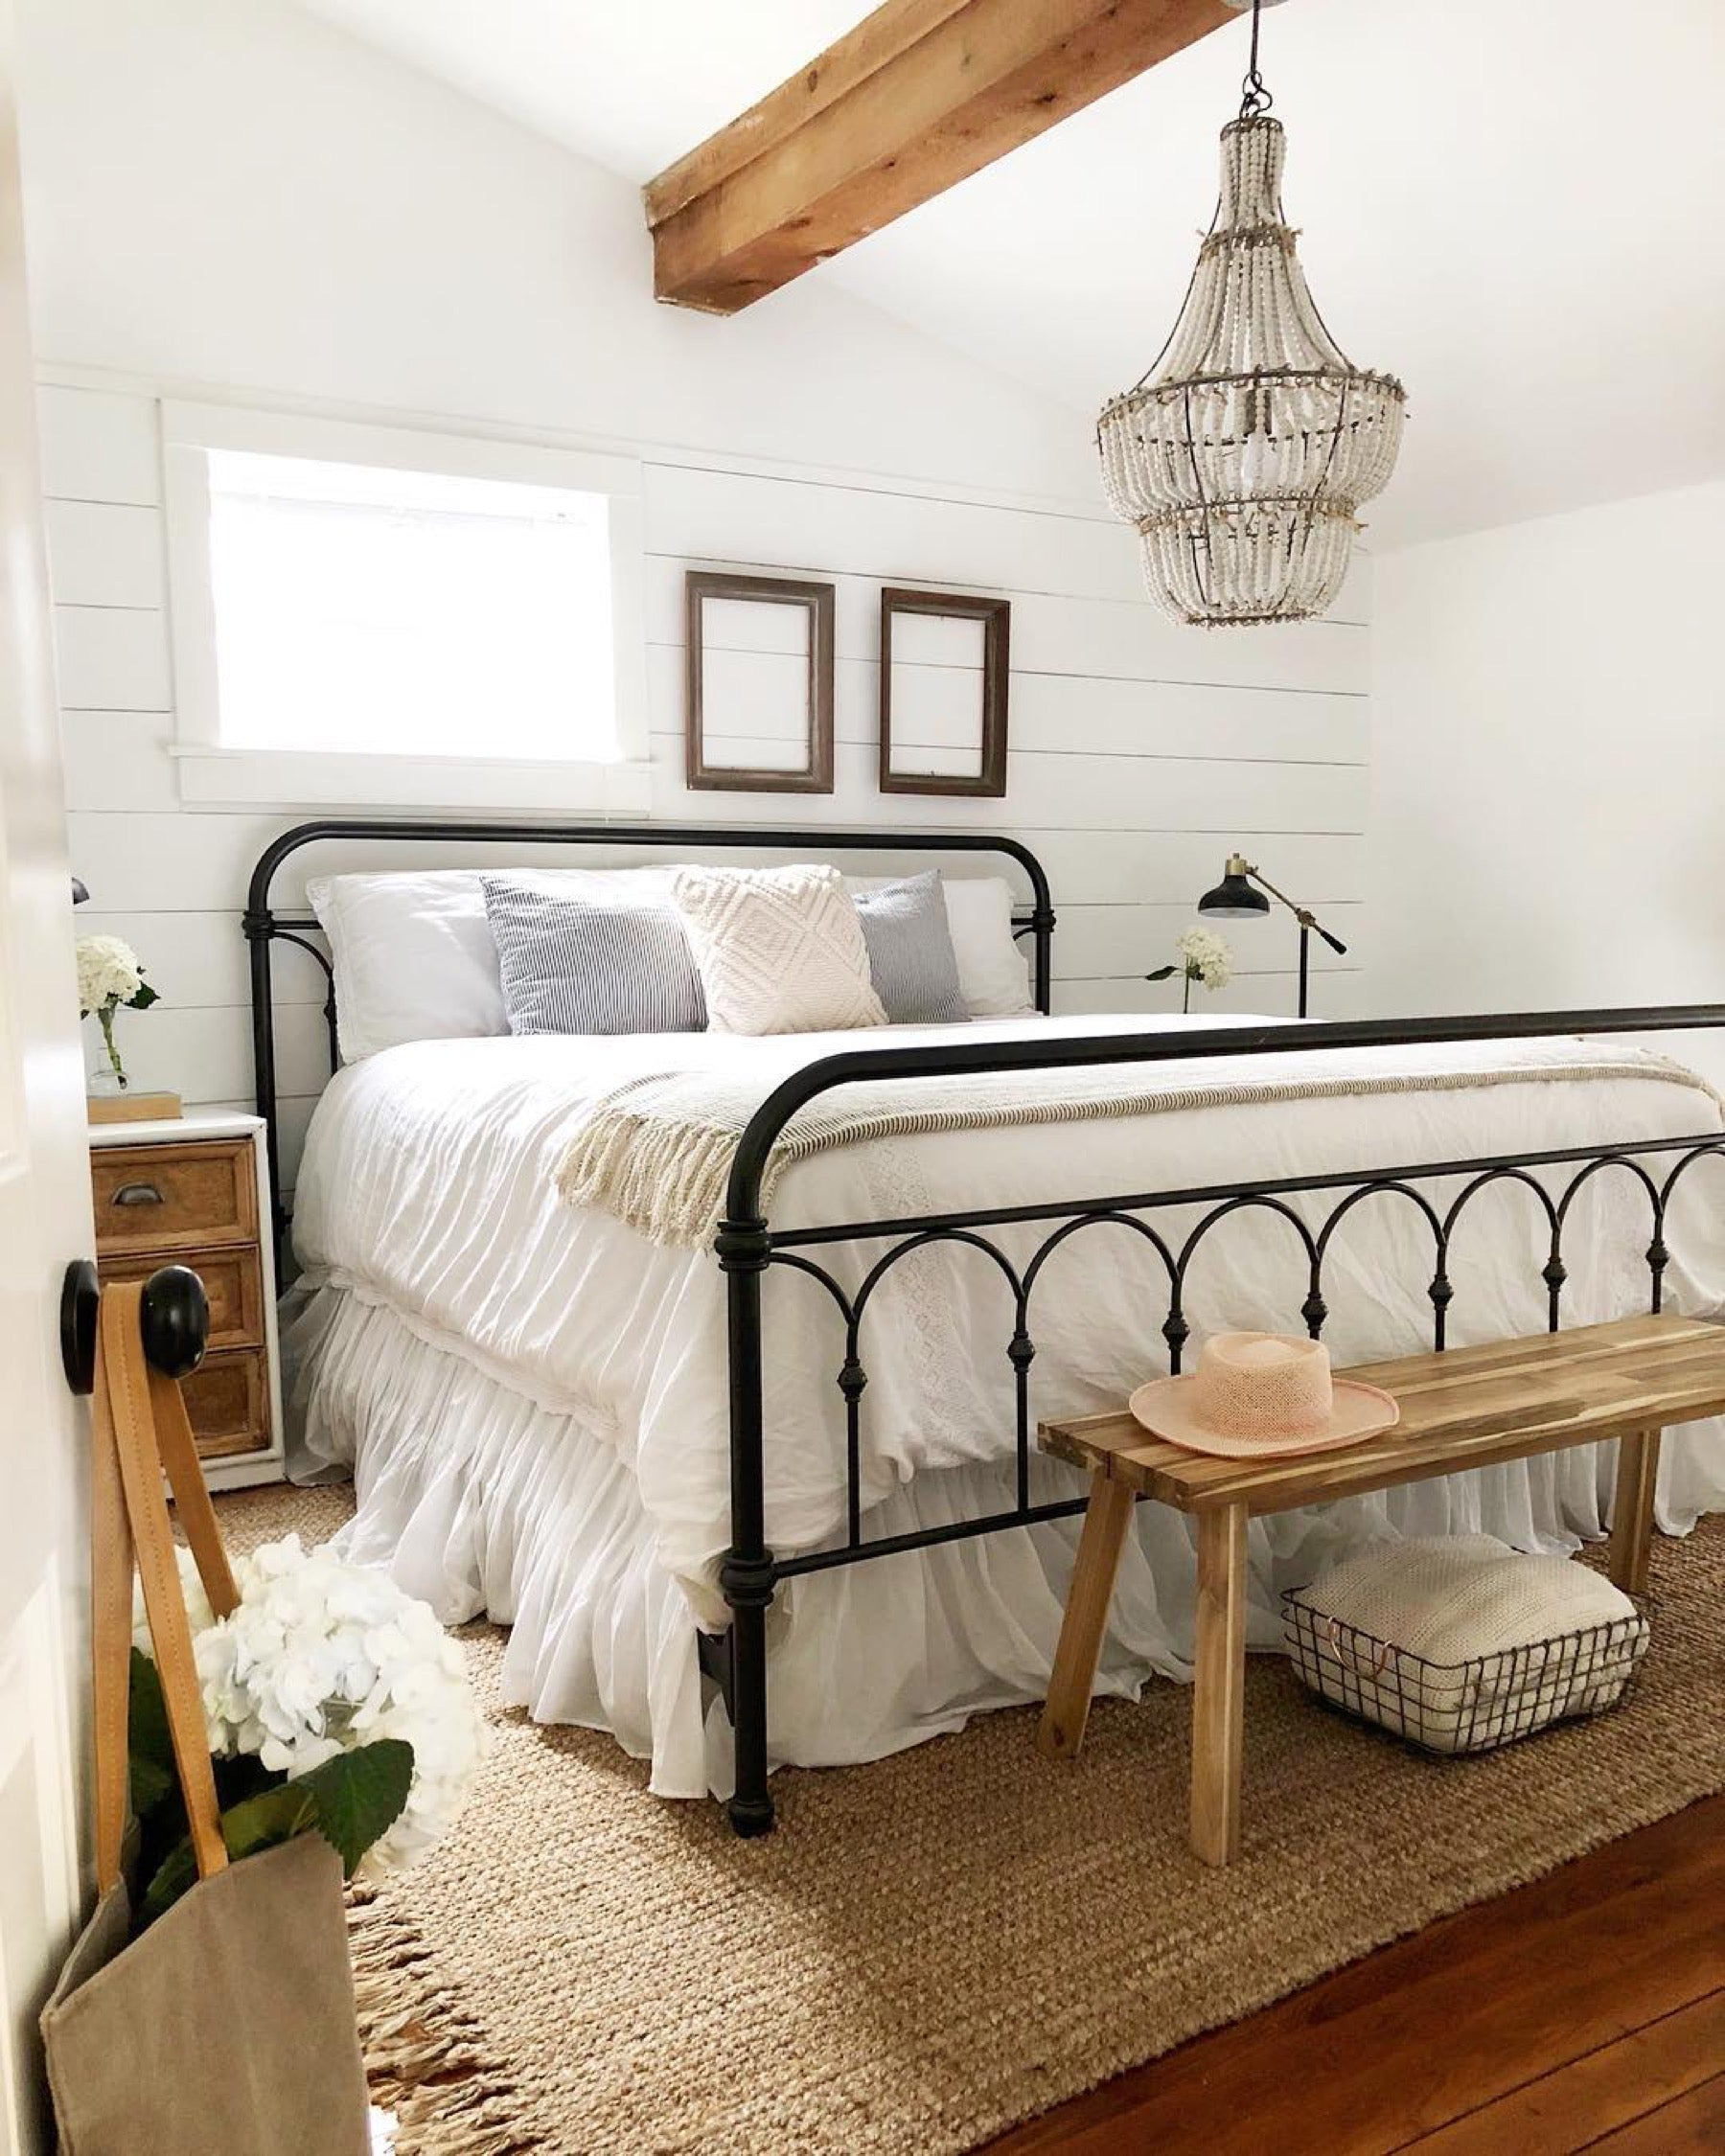 Industrial bed frame in a modern farmhouse